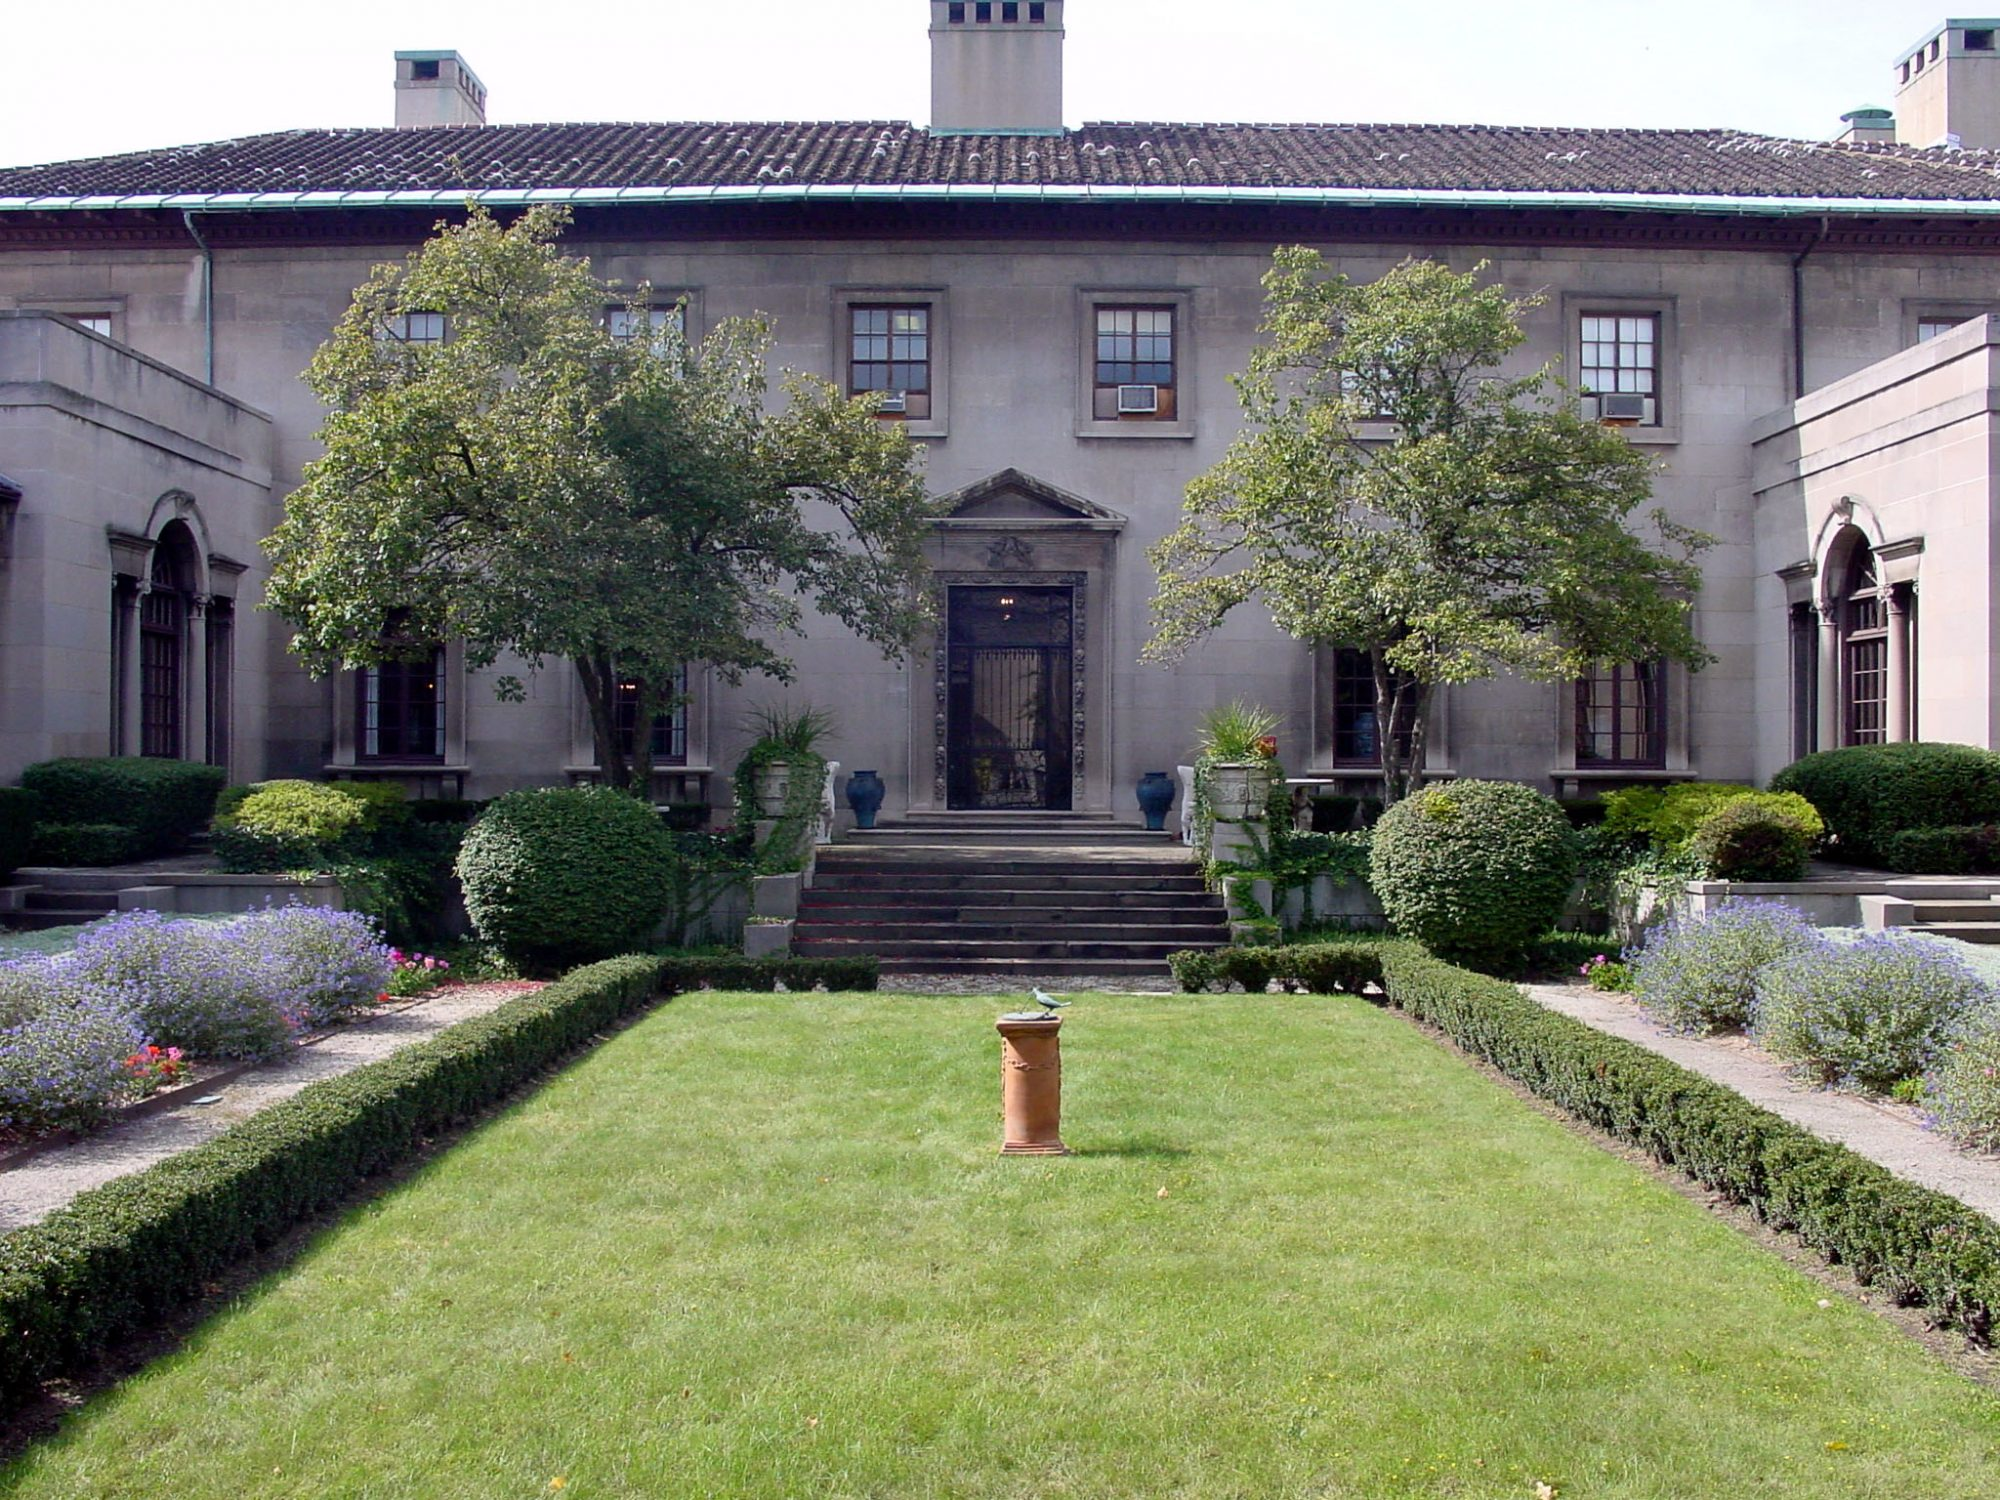 These two mansions are part of the Cleveland History Center and are works of art. Artifacts from the early 1900s, when the homes were built, give visitors a glimpse into the past.